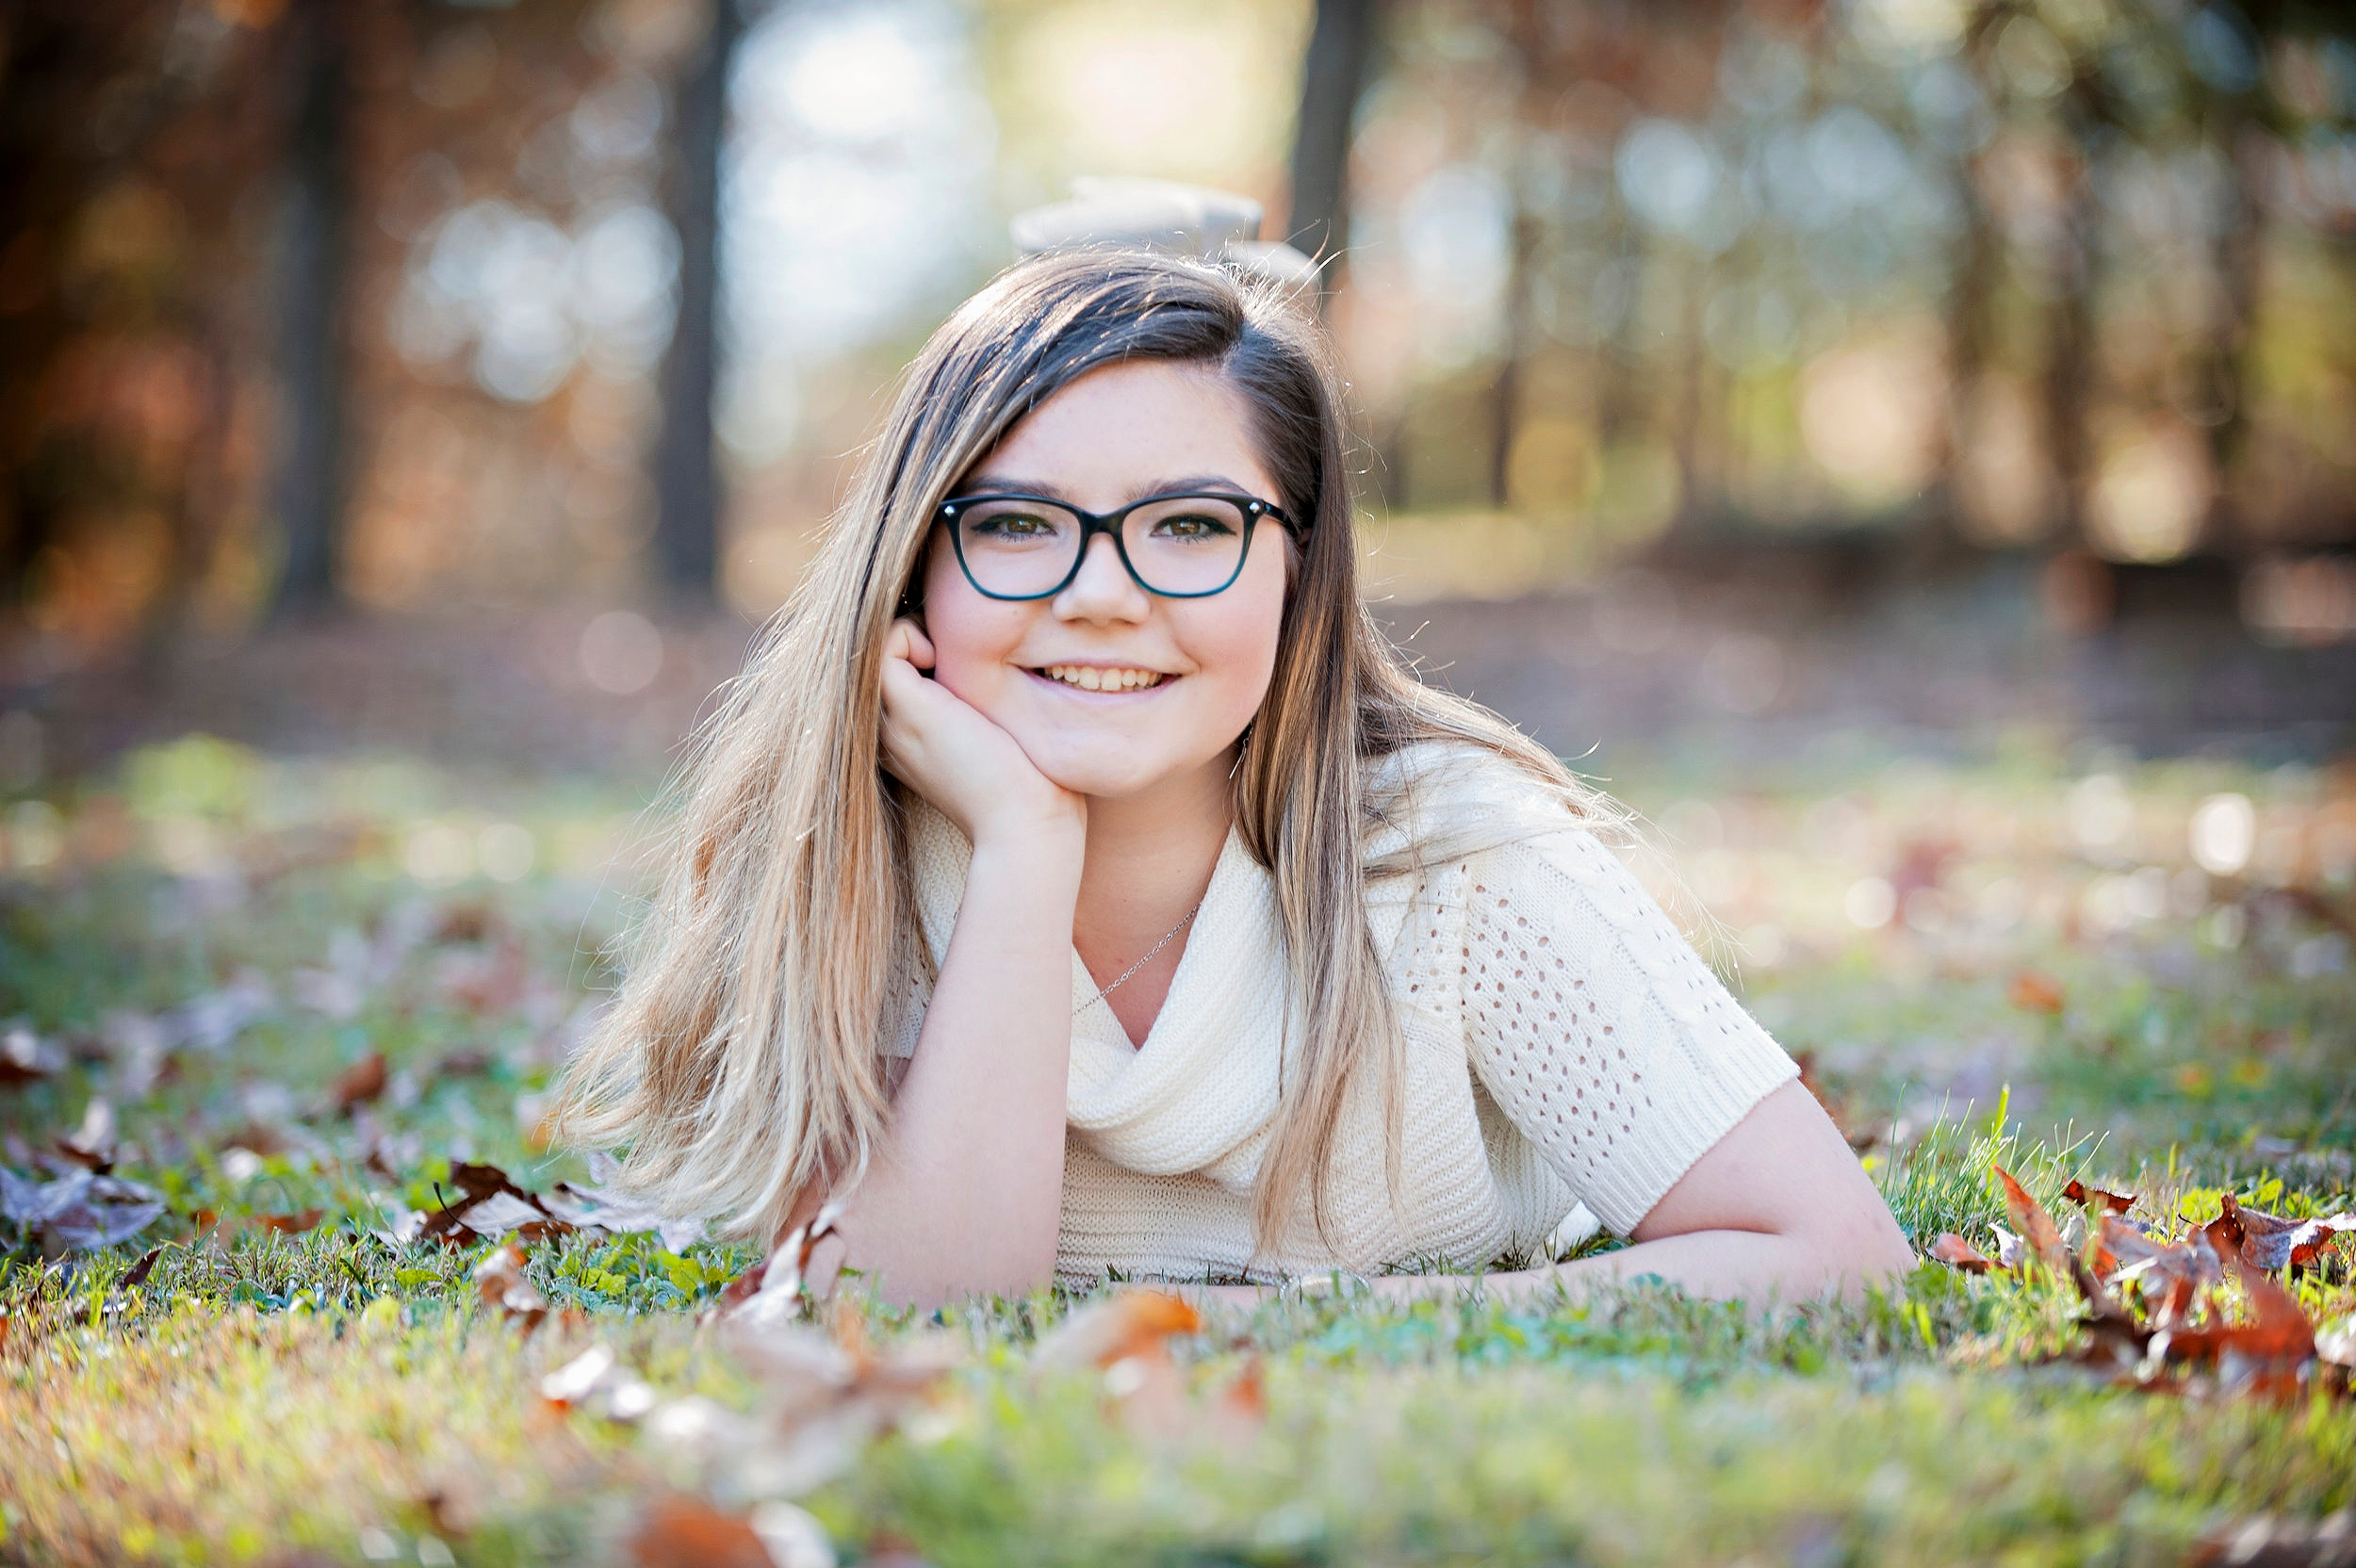 - All portrait sessions are all inclusive.  This means they include our time together at the session (typically around one hour), professional retouching of your images, and a private online gallery with print release. Portrait sessions are $200.